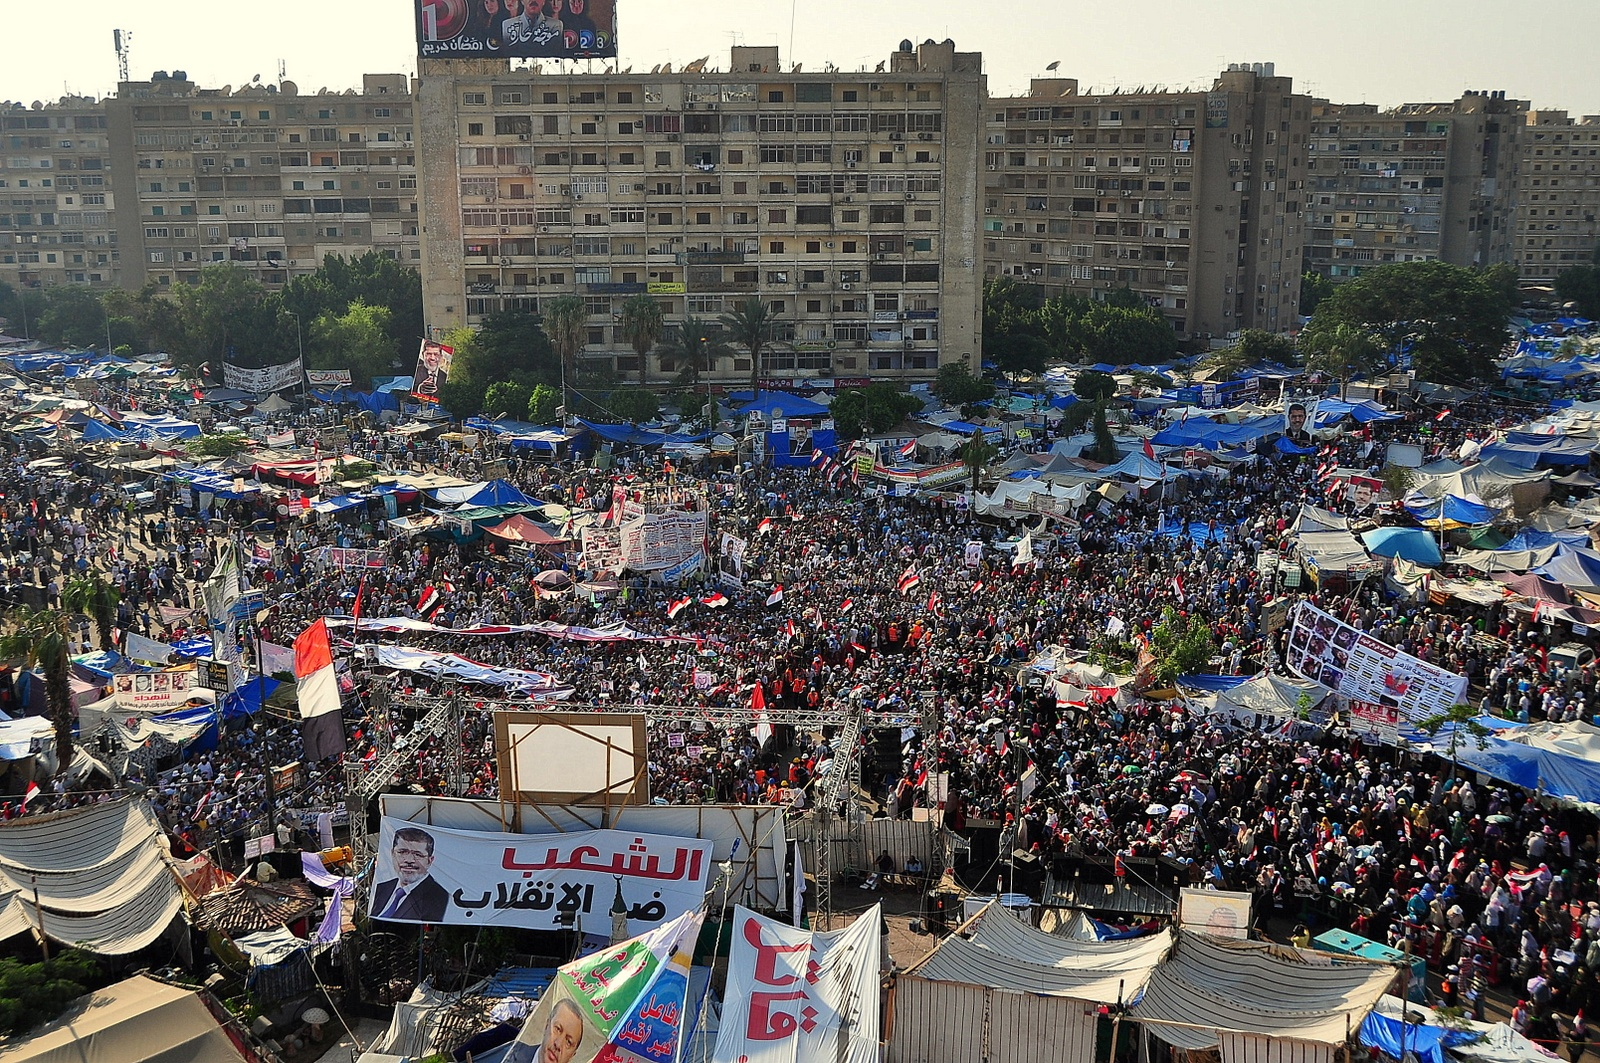 Pro-Morsi sit-in in front of Rabaa Al Adaweya mosque (Photo by Aaron T. Rose/DNE)